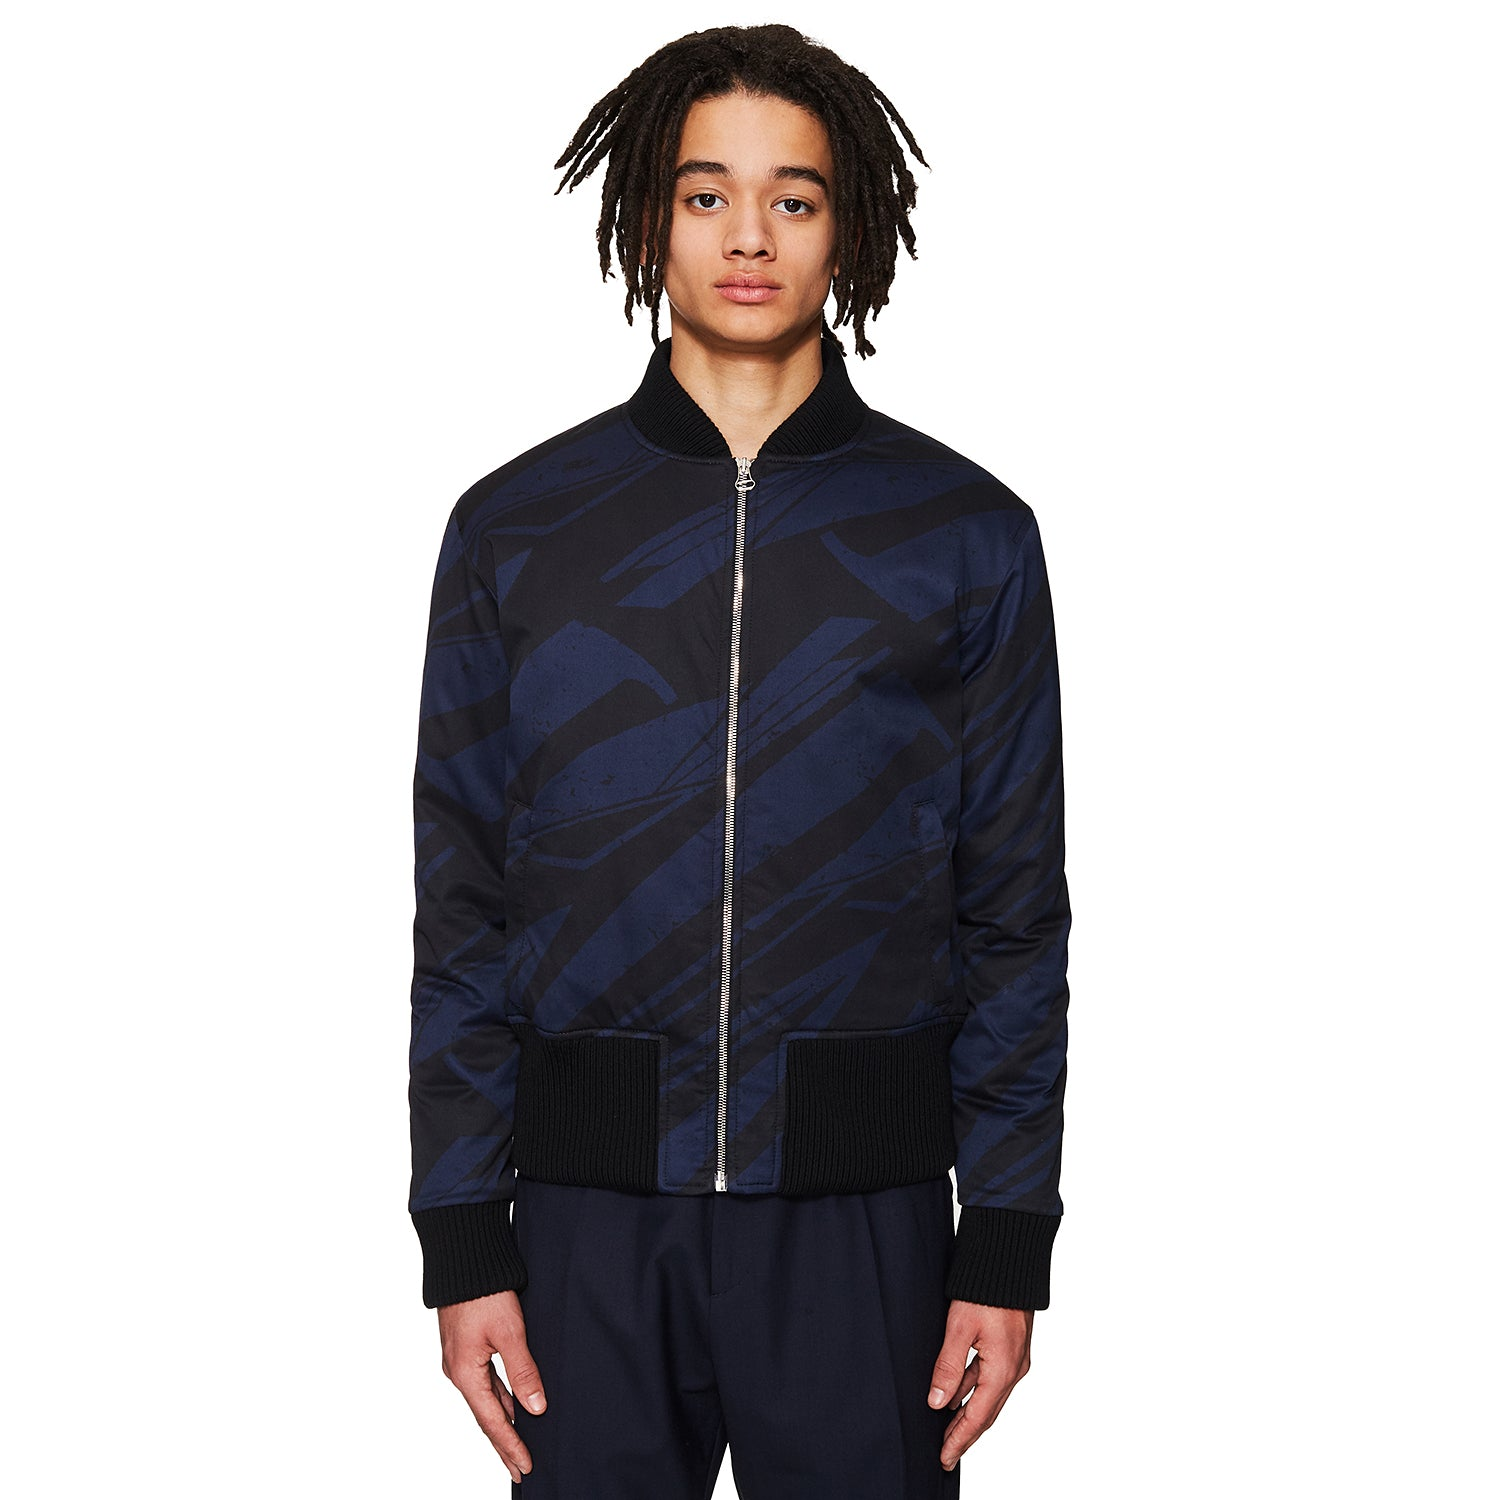 Spaceship Bomber Jacket Navy